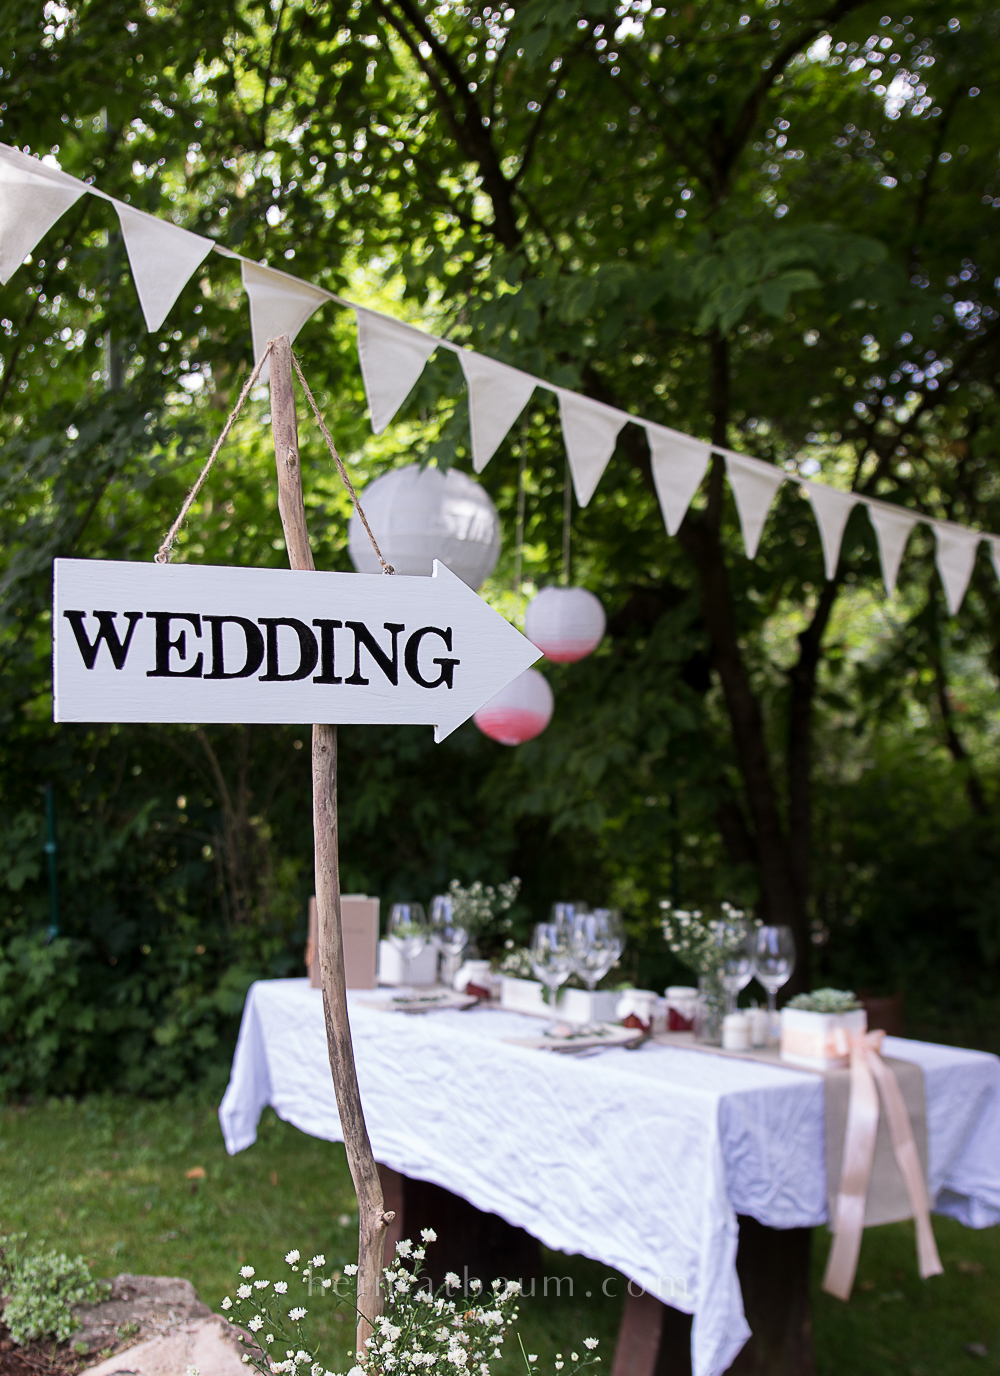 table-setting-wedding-heimatbaum-com-3